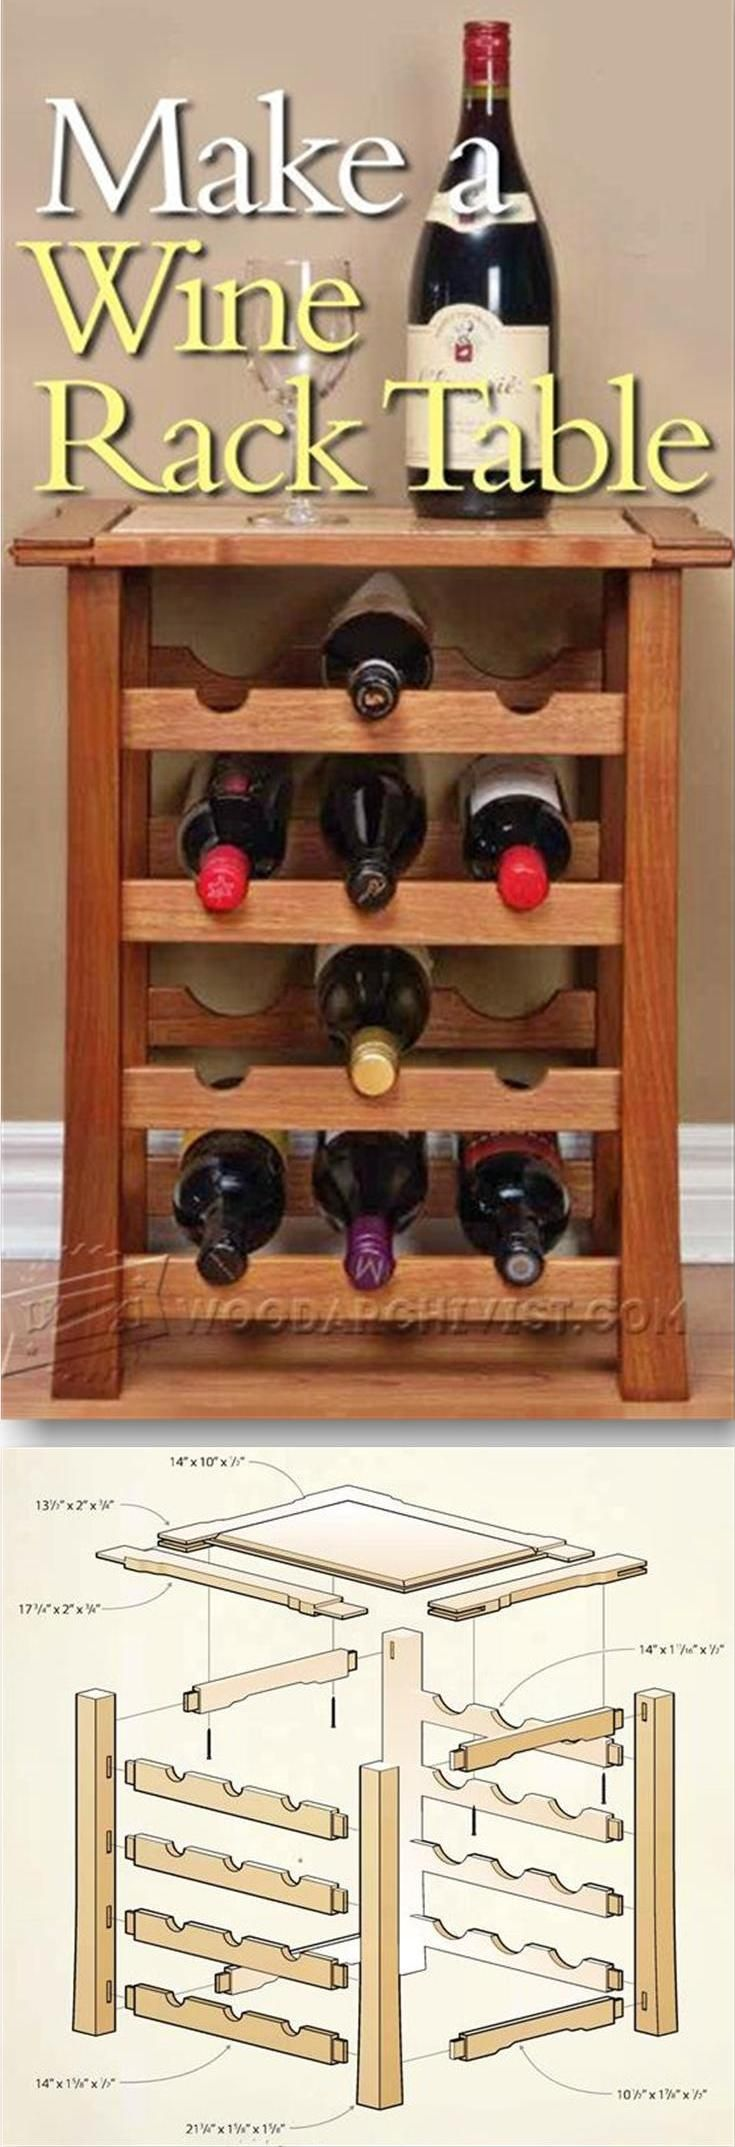 Wine Rack Table Plans Furniture Plans And Projects Woodarchivist Com Woodworking Plans Diy Easy Woodworking Projects Wine Rack Table